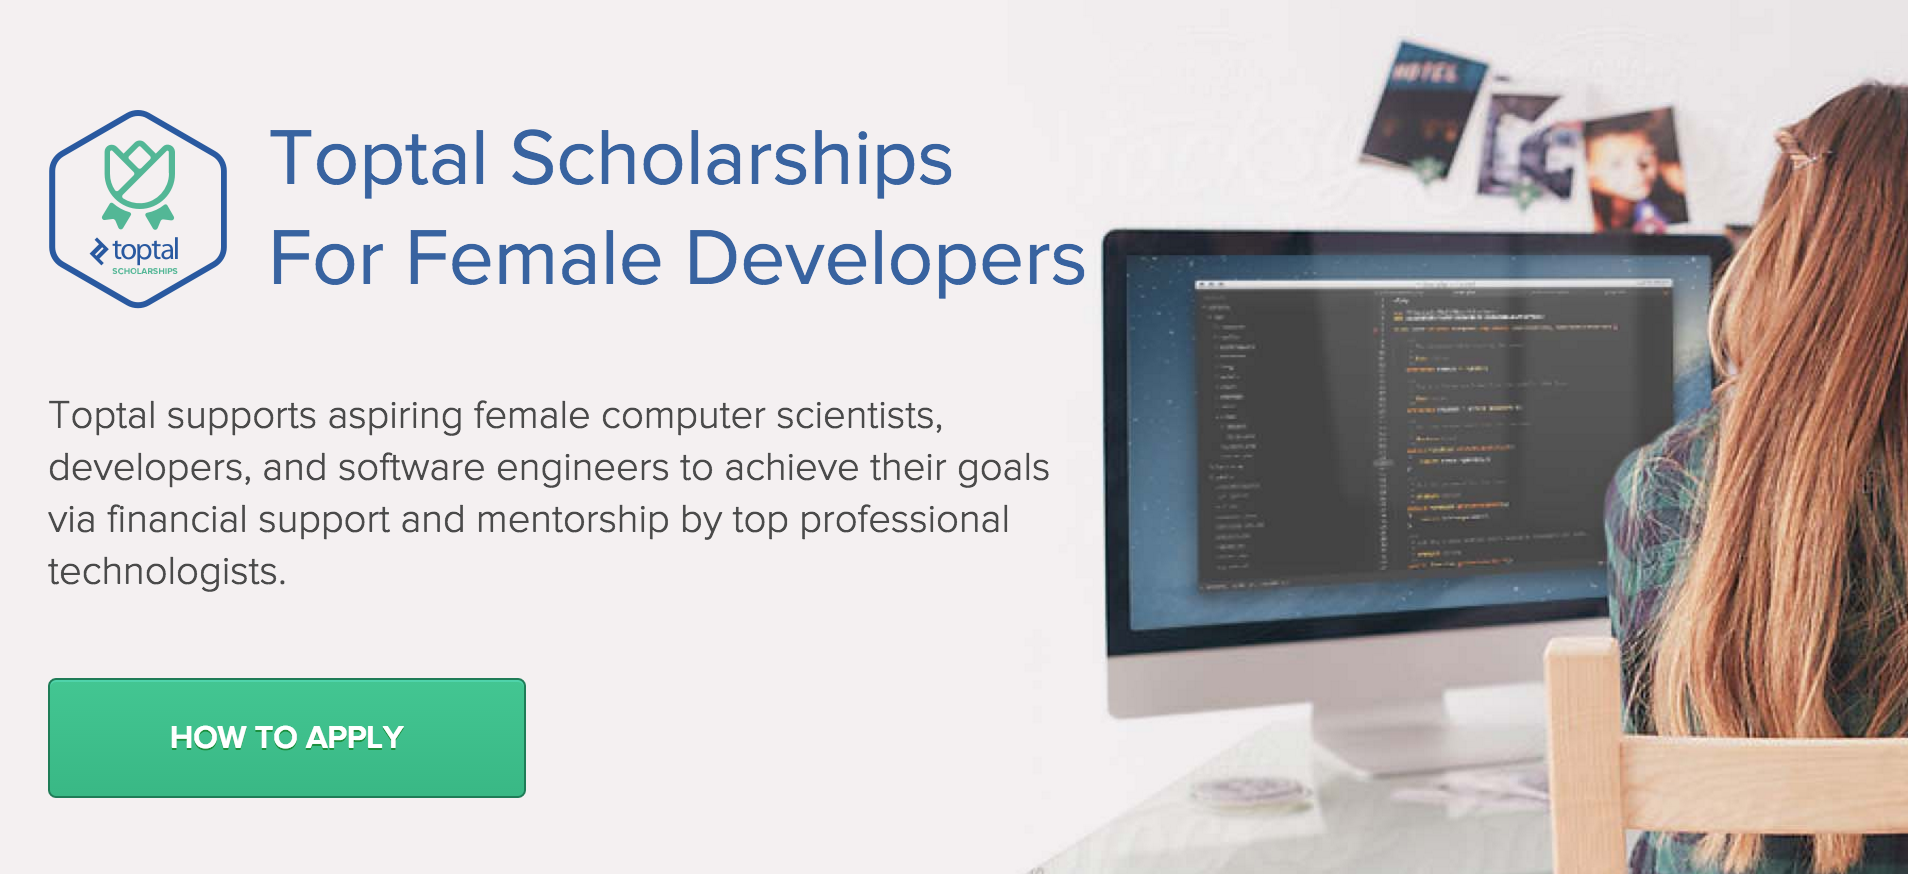 toptal-scholarship-for-female-developers